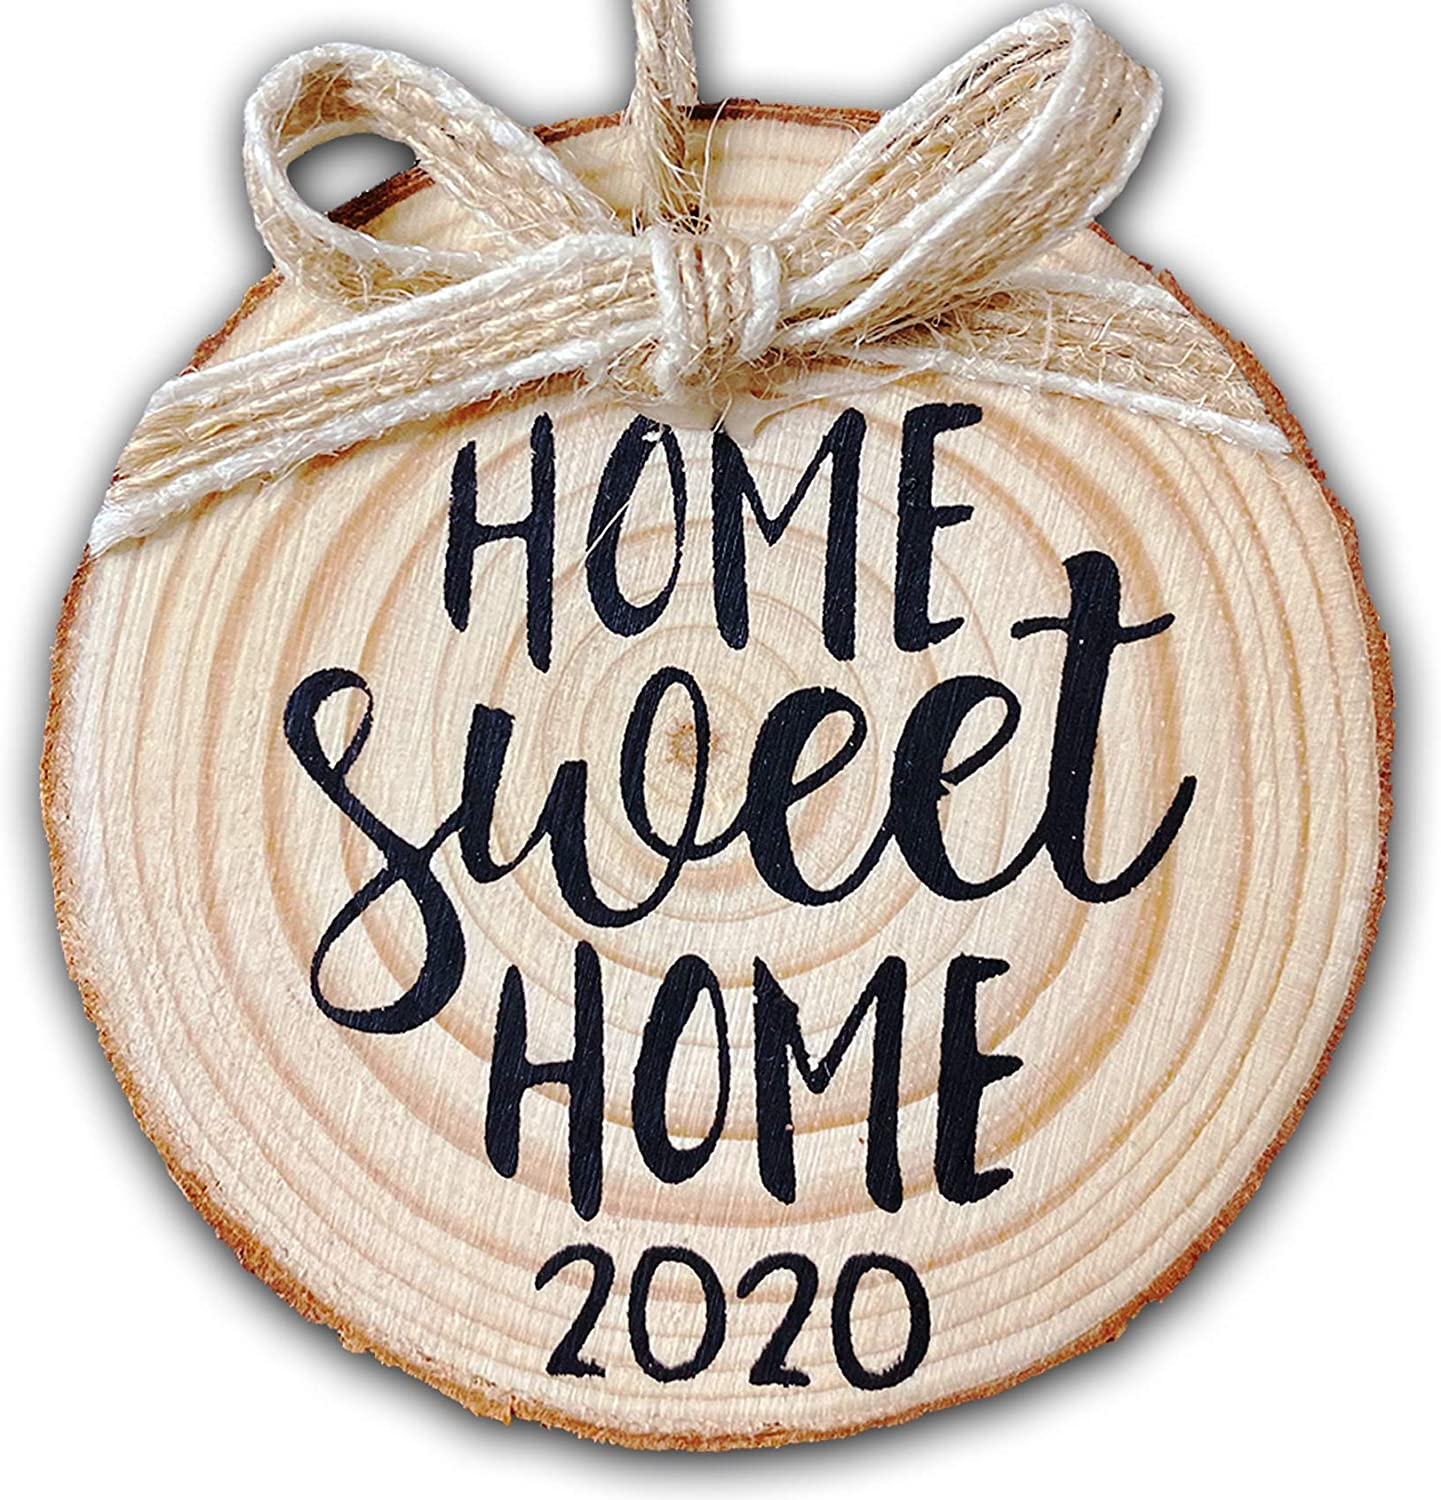 2020-Christmas-Ornament-Quarantine Christmas Decorations Housewarming Home Sweet for Indoor Outdoor Home Gift for Women Man Kids